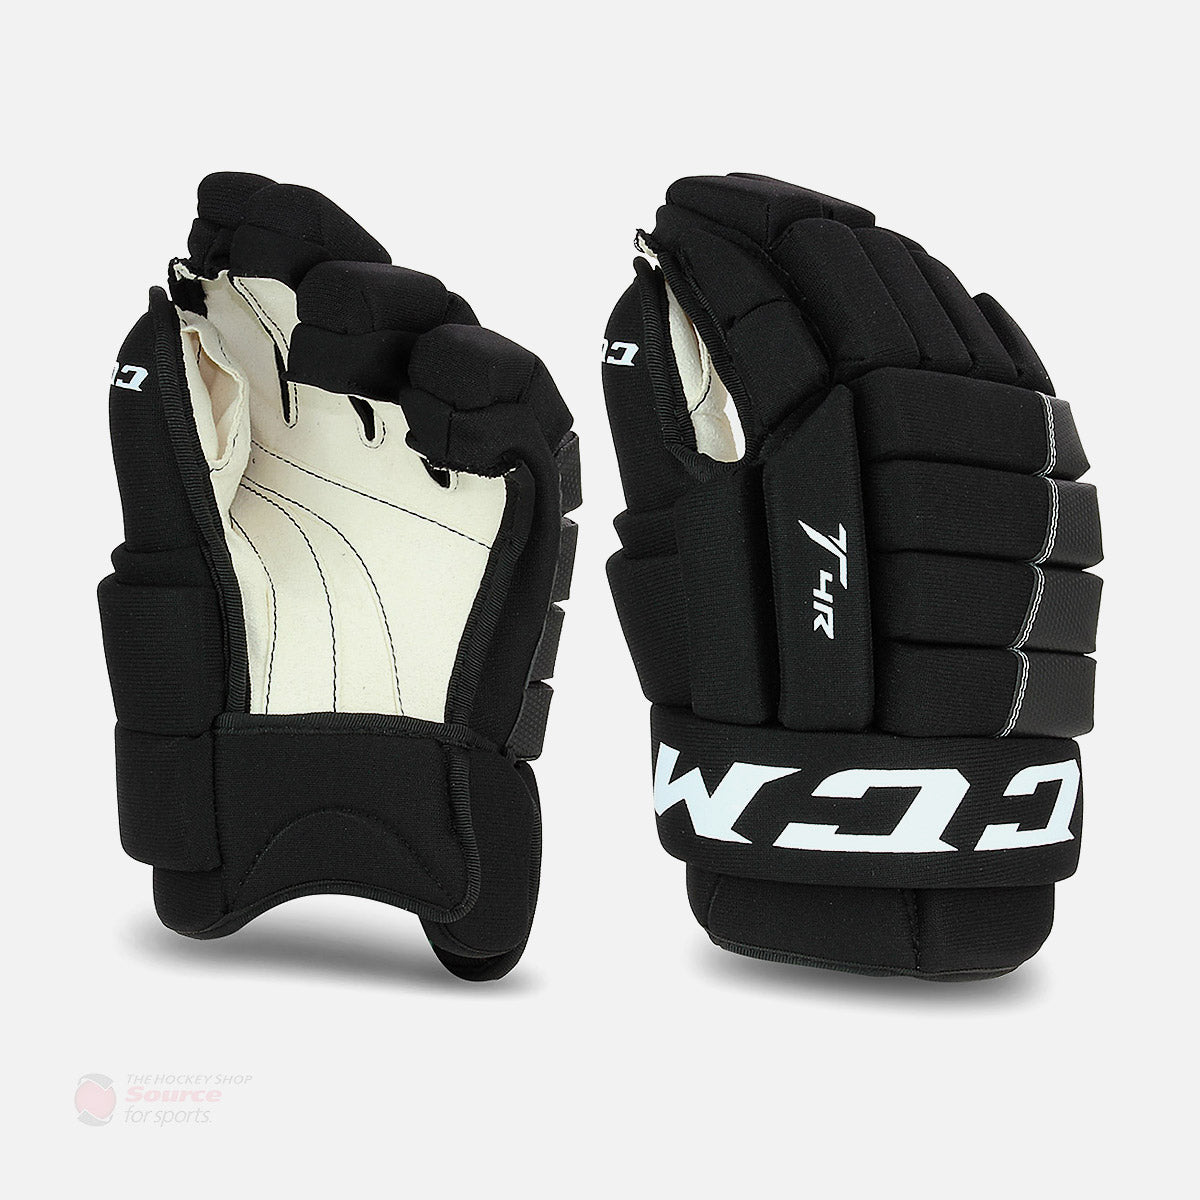 CCM Tacks 4R Senior Hockey Gloves (2017)